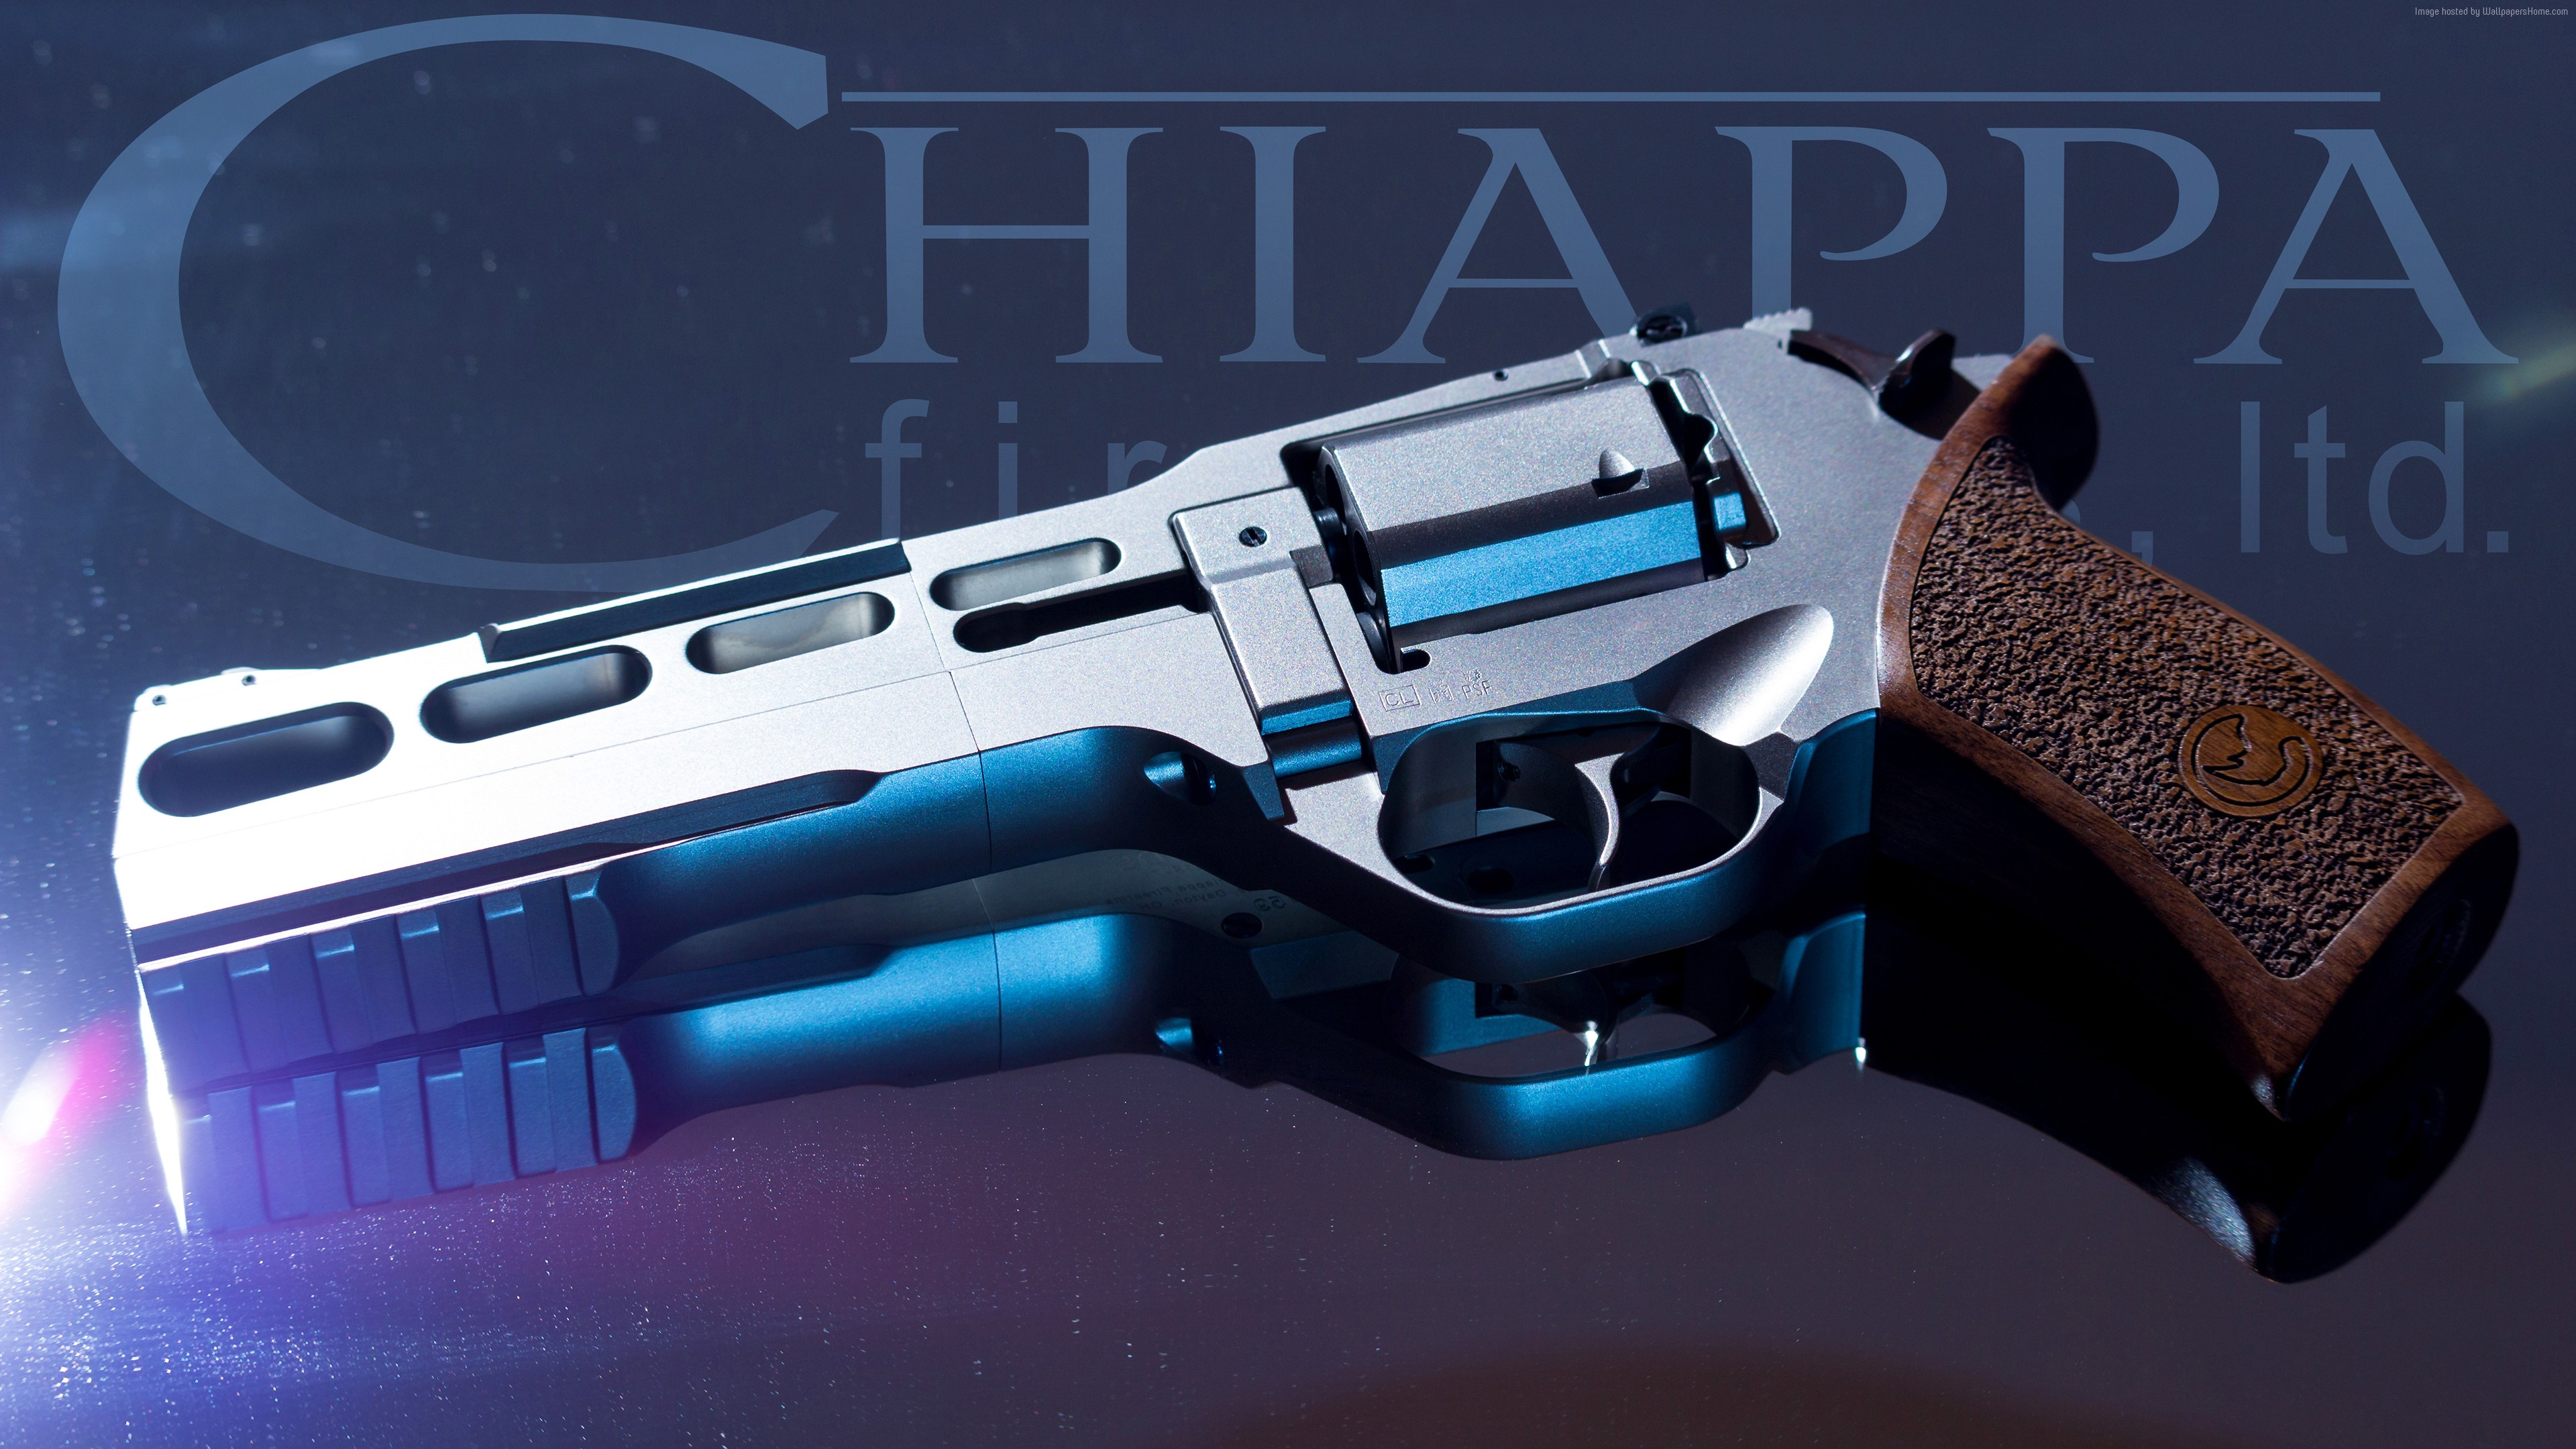 Wallpaper Rhino 60DS, Chiappa Rhino, Revolver, Military